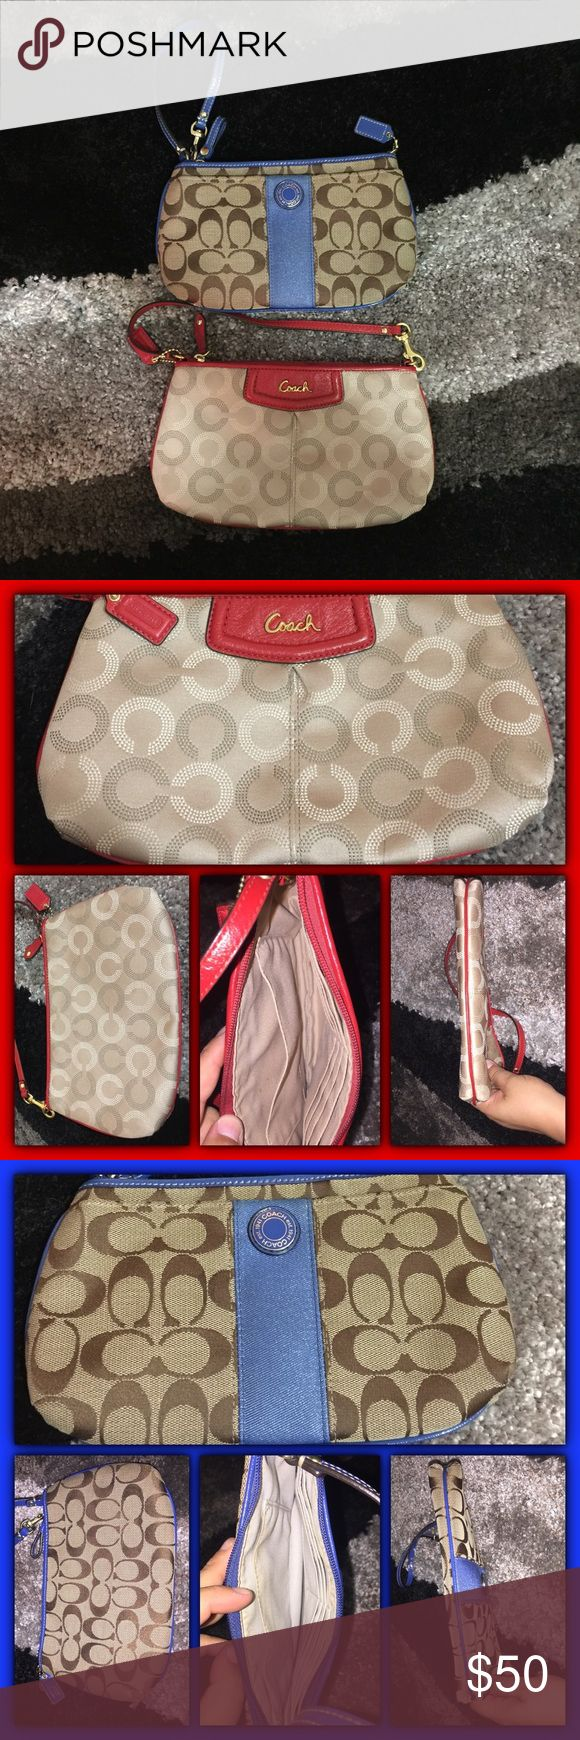 Coach wristlets Two Coach wristlets, one in red and one in blue... in good condition, clean outside and inside... 💯 authentic, purchased at a Coach Shop... Coach Bags Clutches & Wristlets